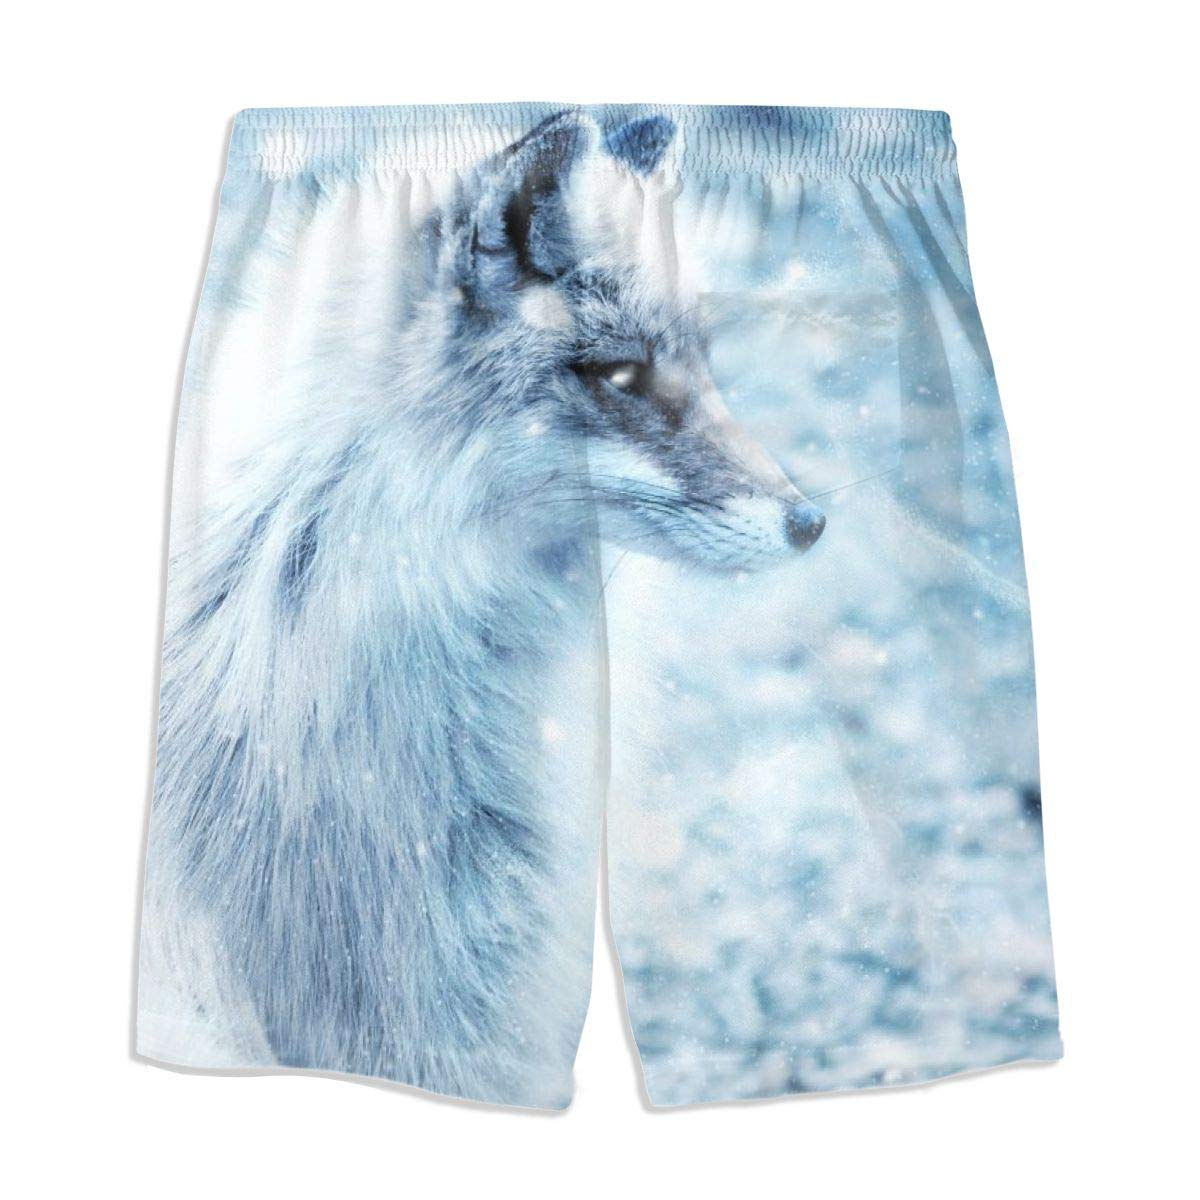 Boys Comfortable Hawaii Beach Cross-Country Casual Style Beach Shorts Swim Trunks Board Shorts